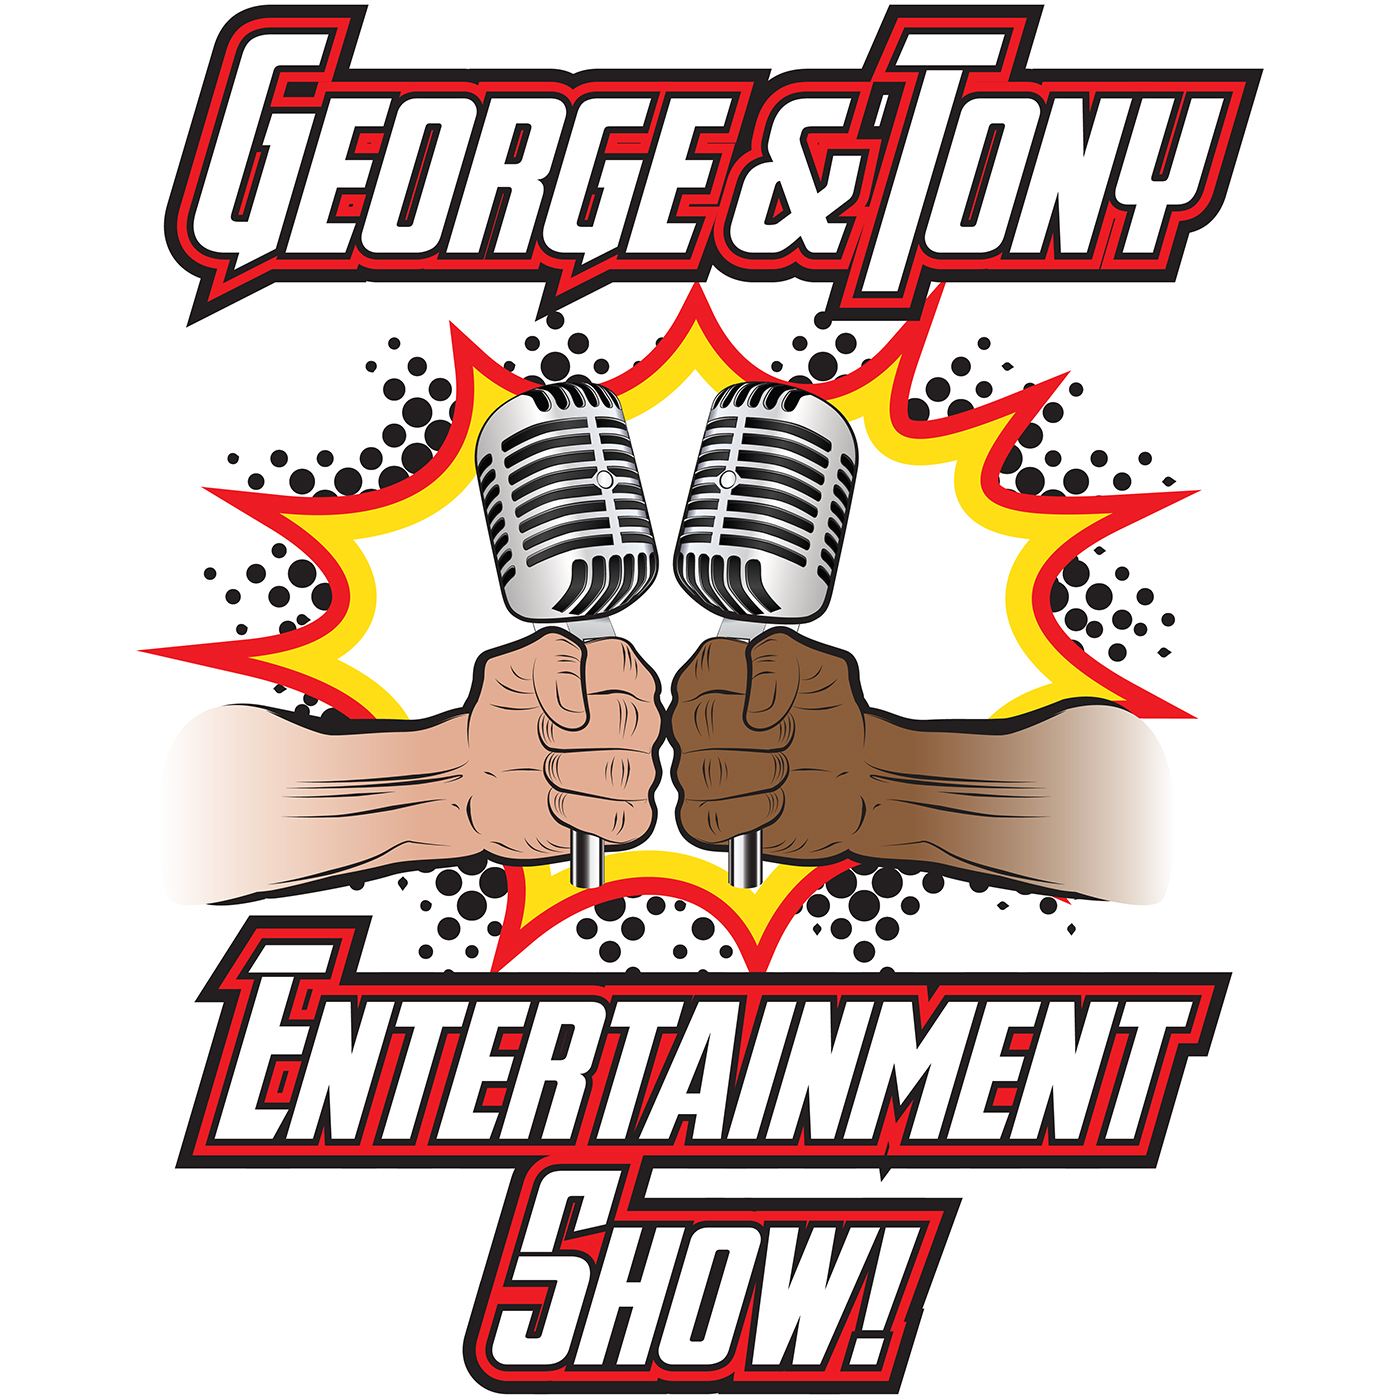 George and Tony Entertainment Show #143